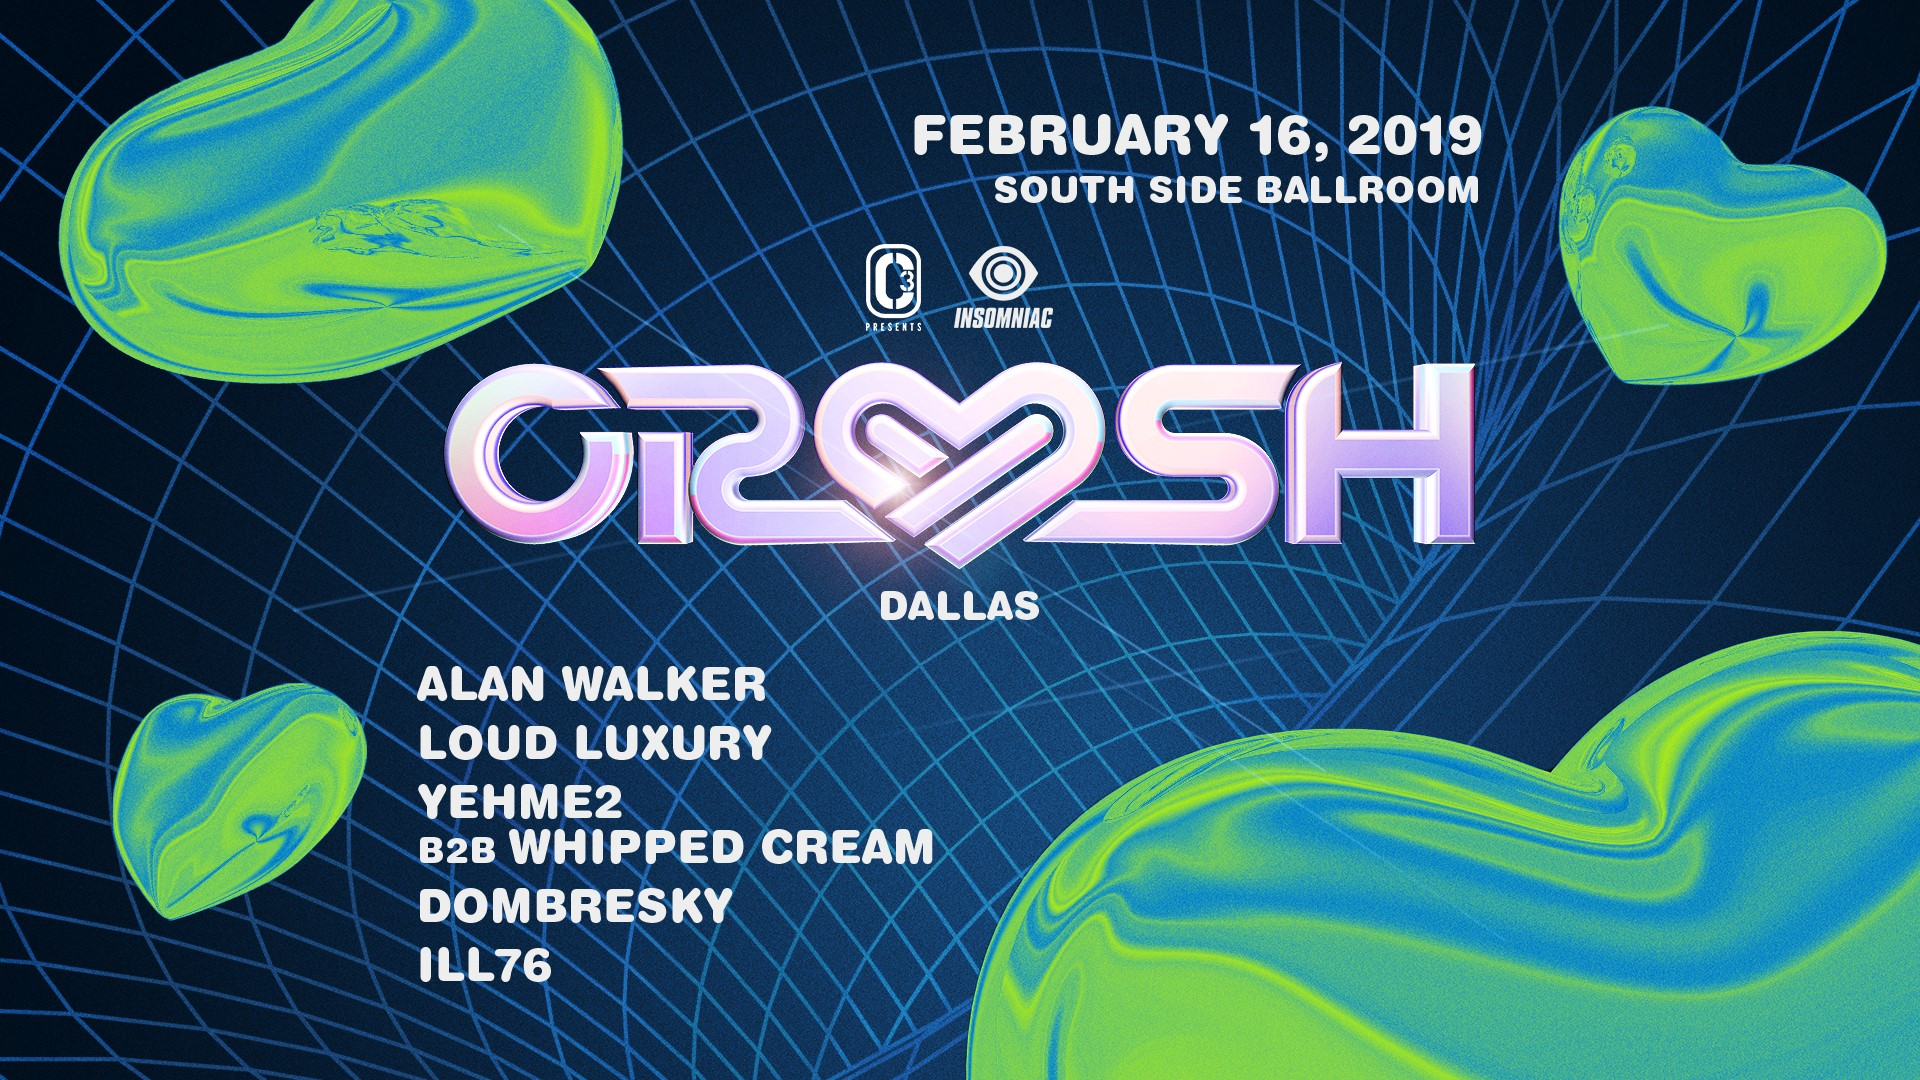 Crush Dallas Lineup